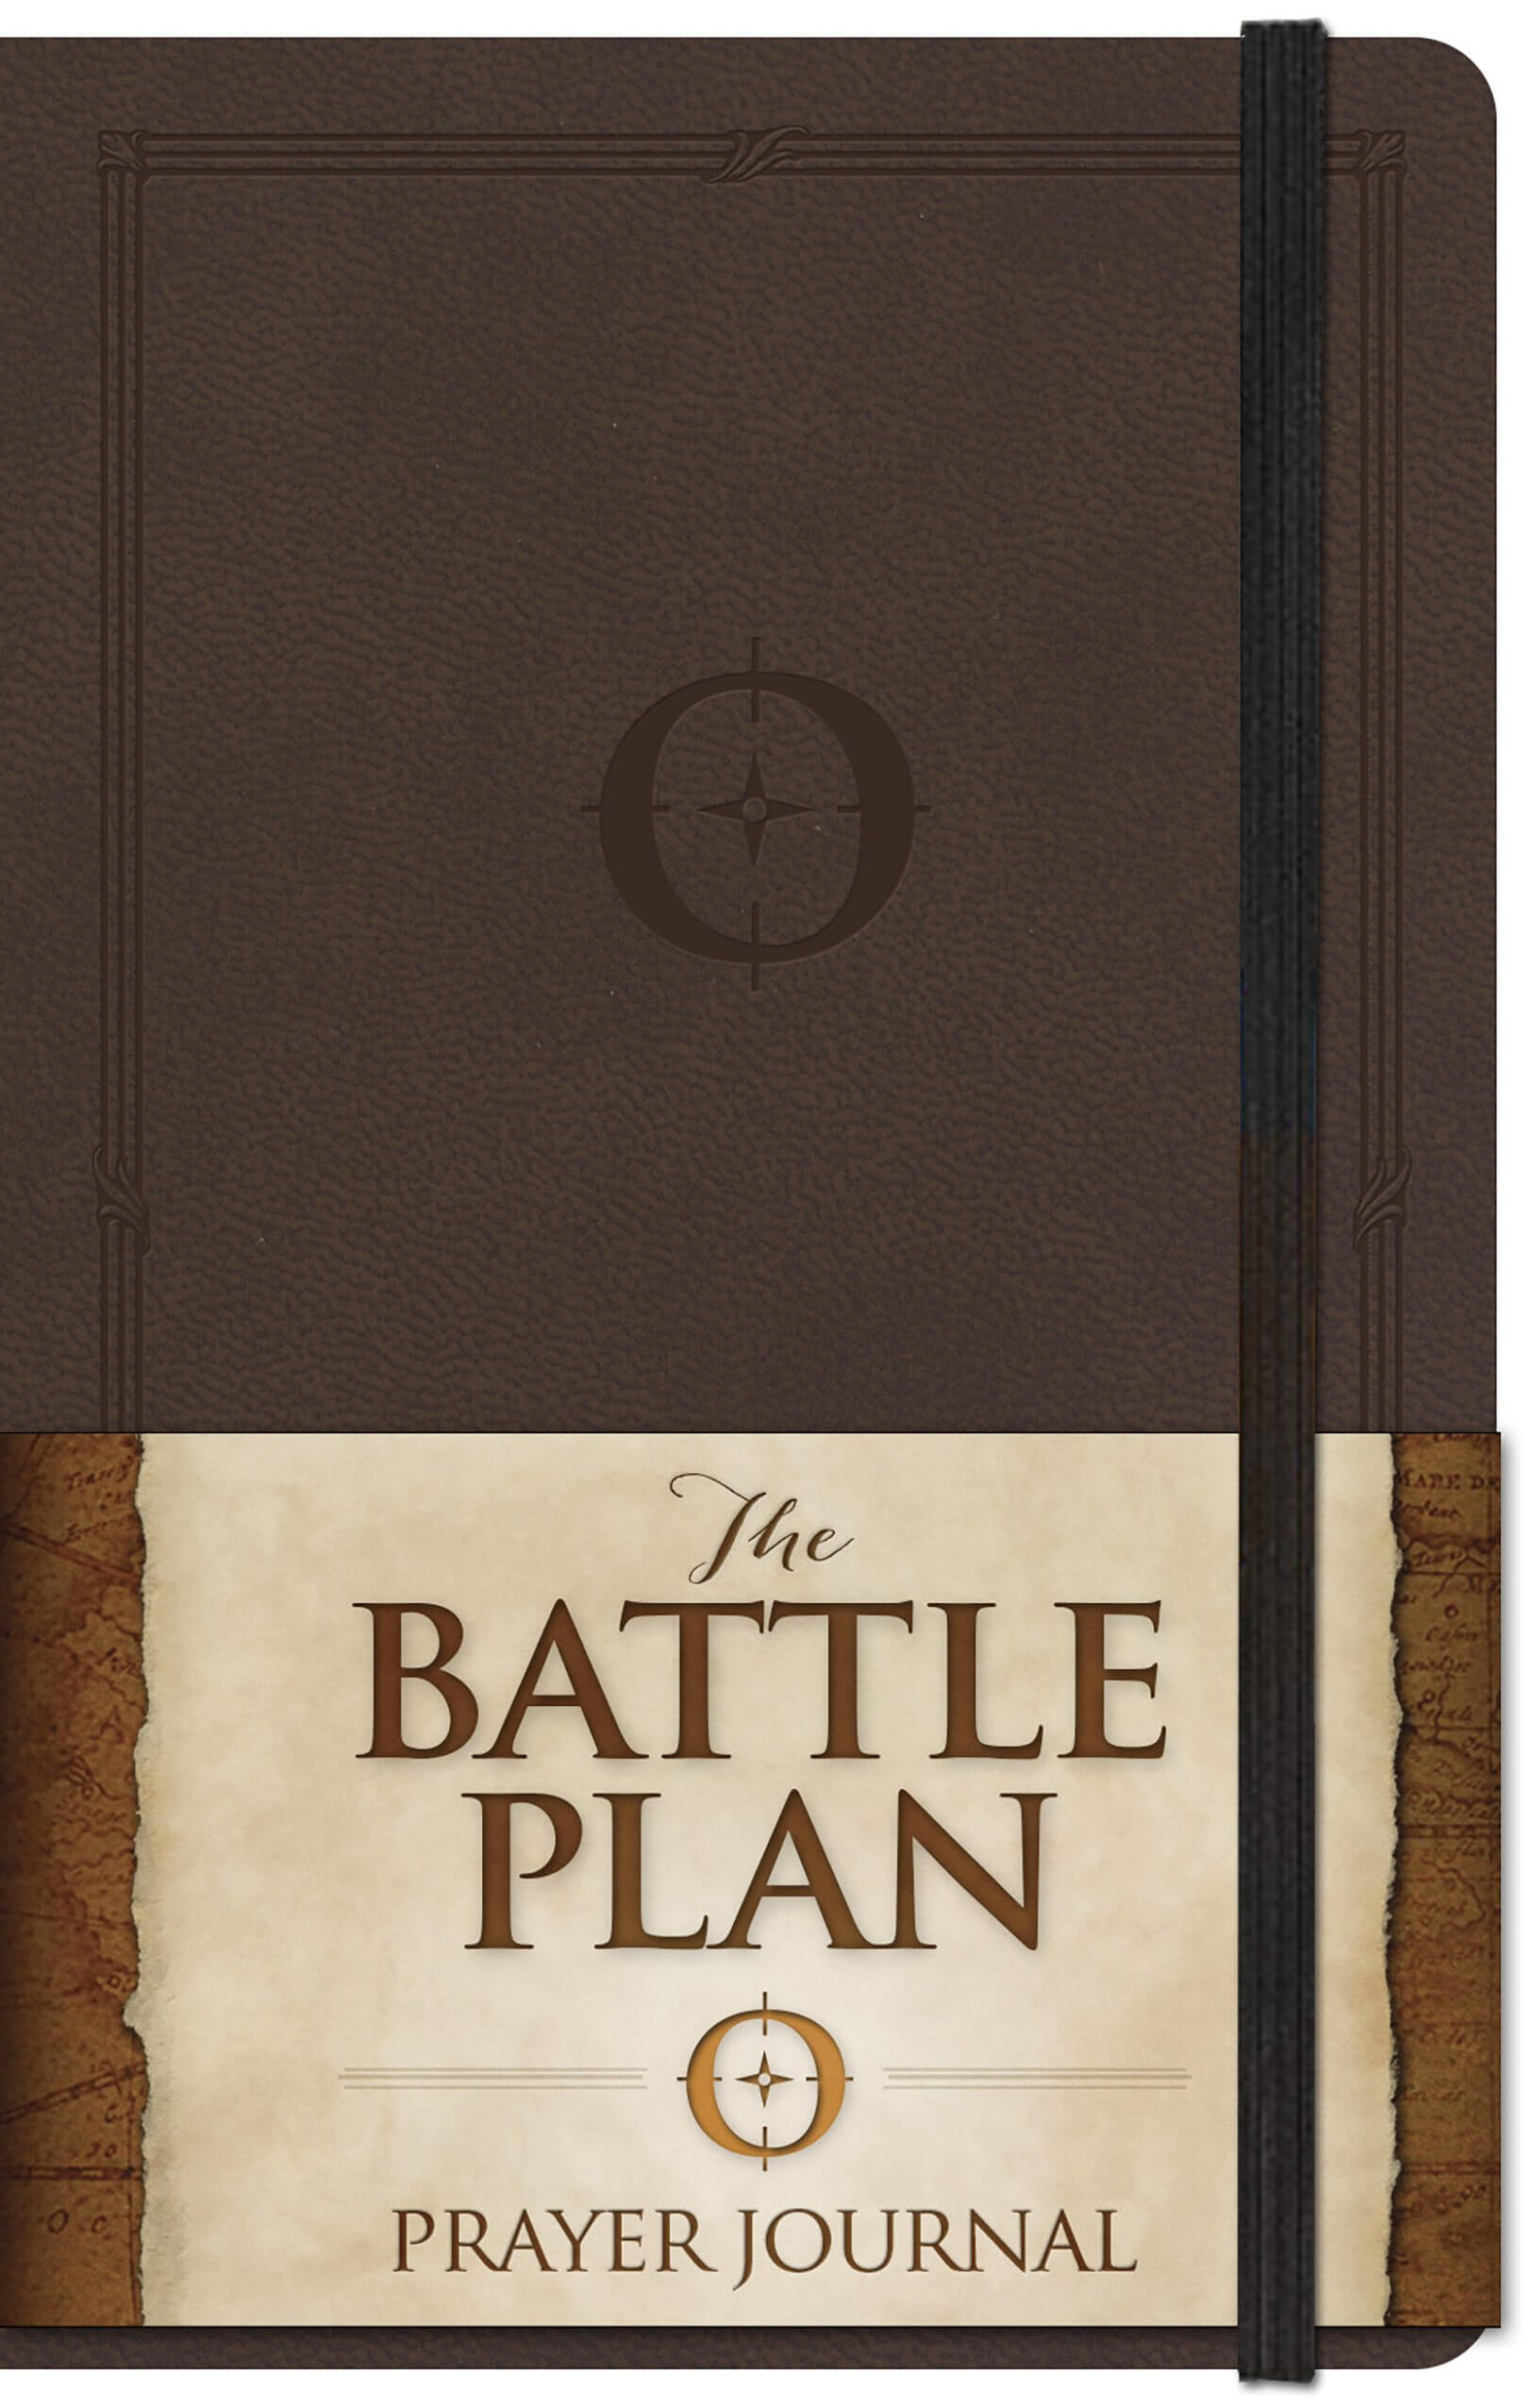 THE-BATTLE-PLAN-PRAYER-JOURNAL